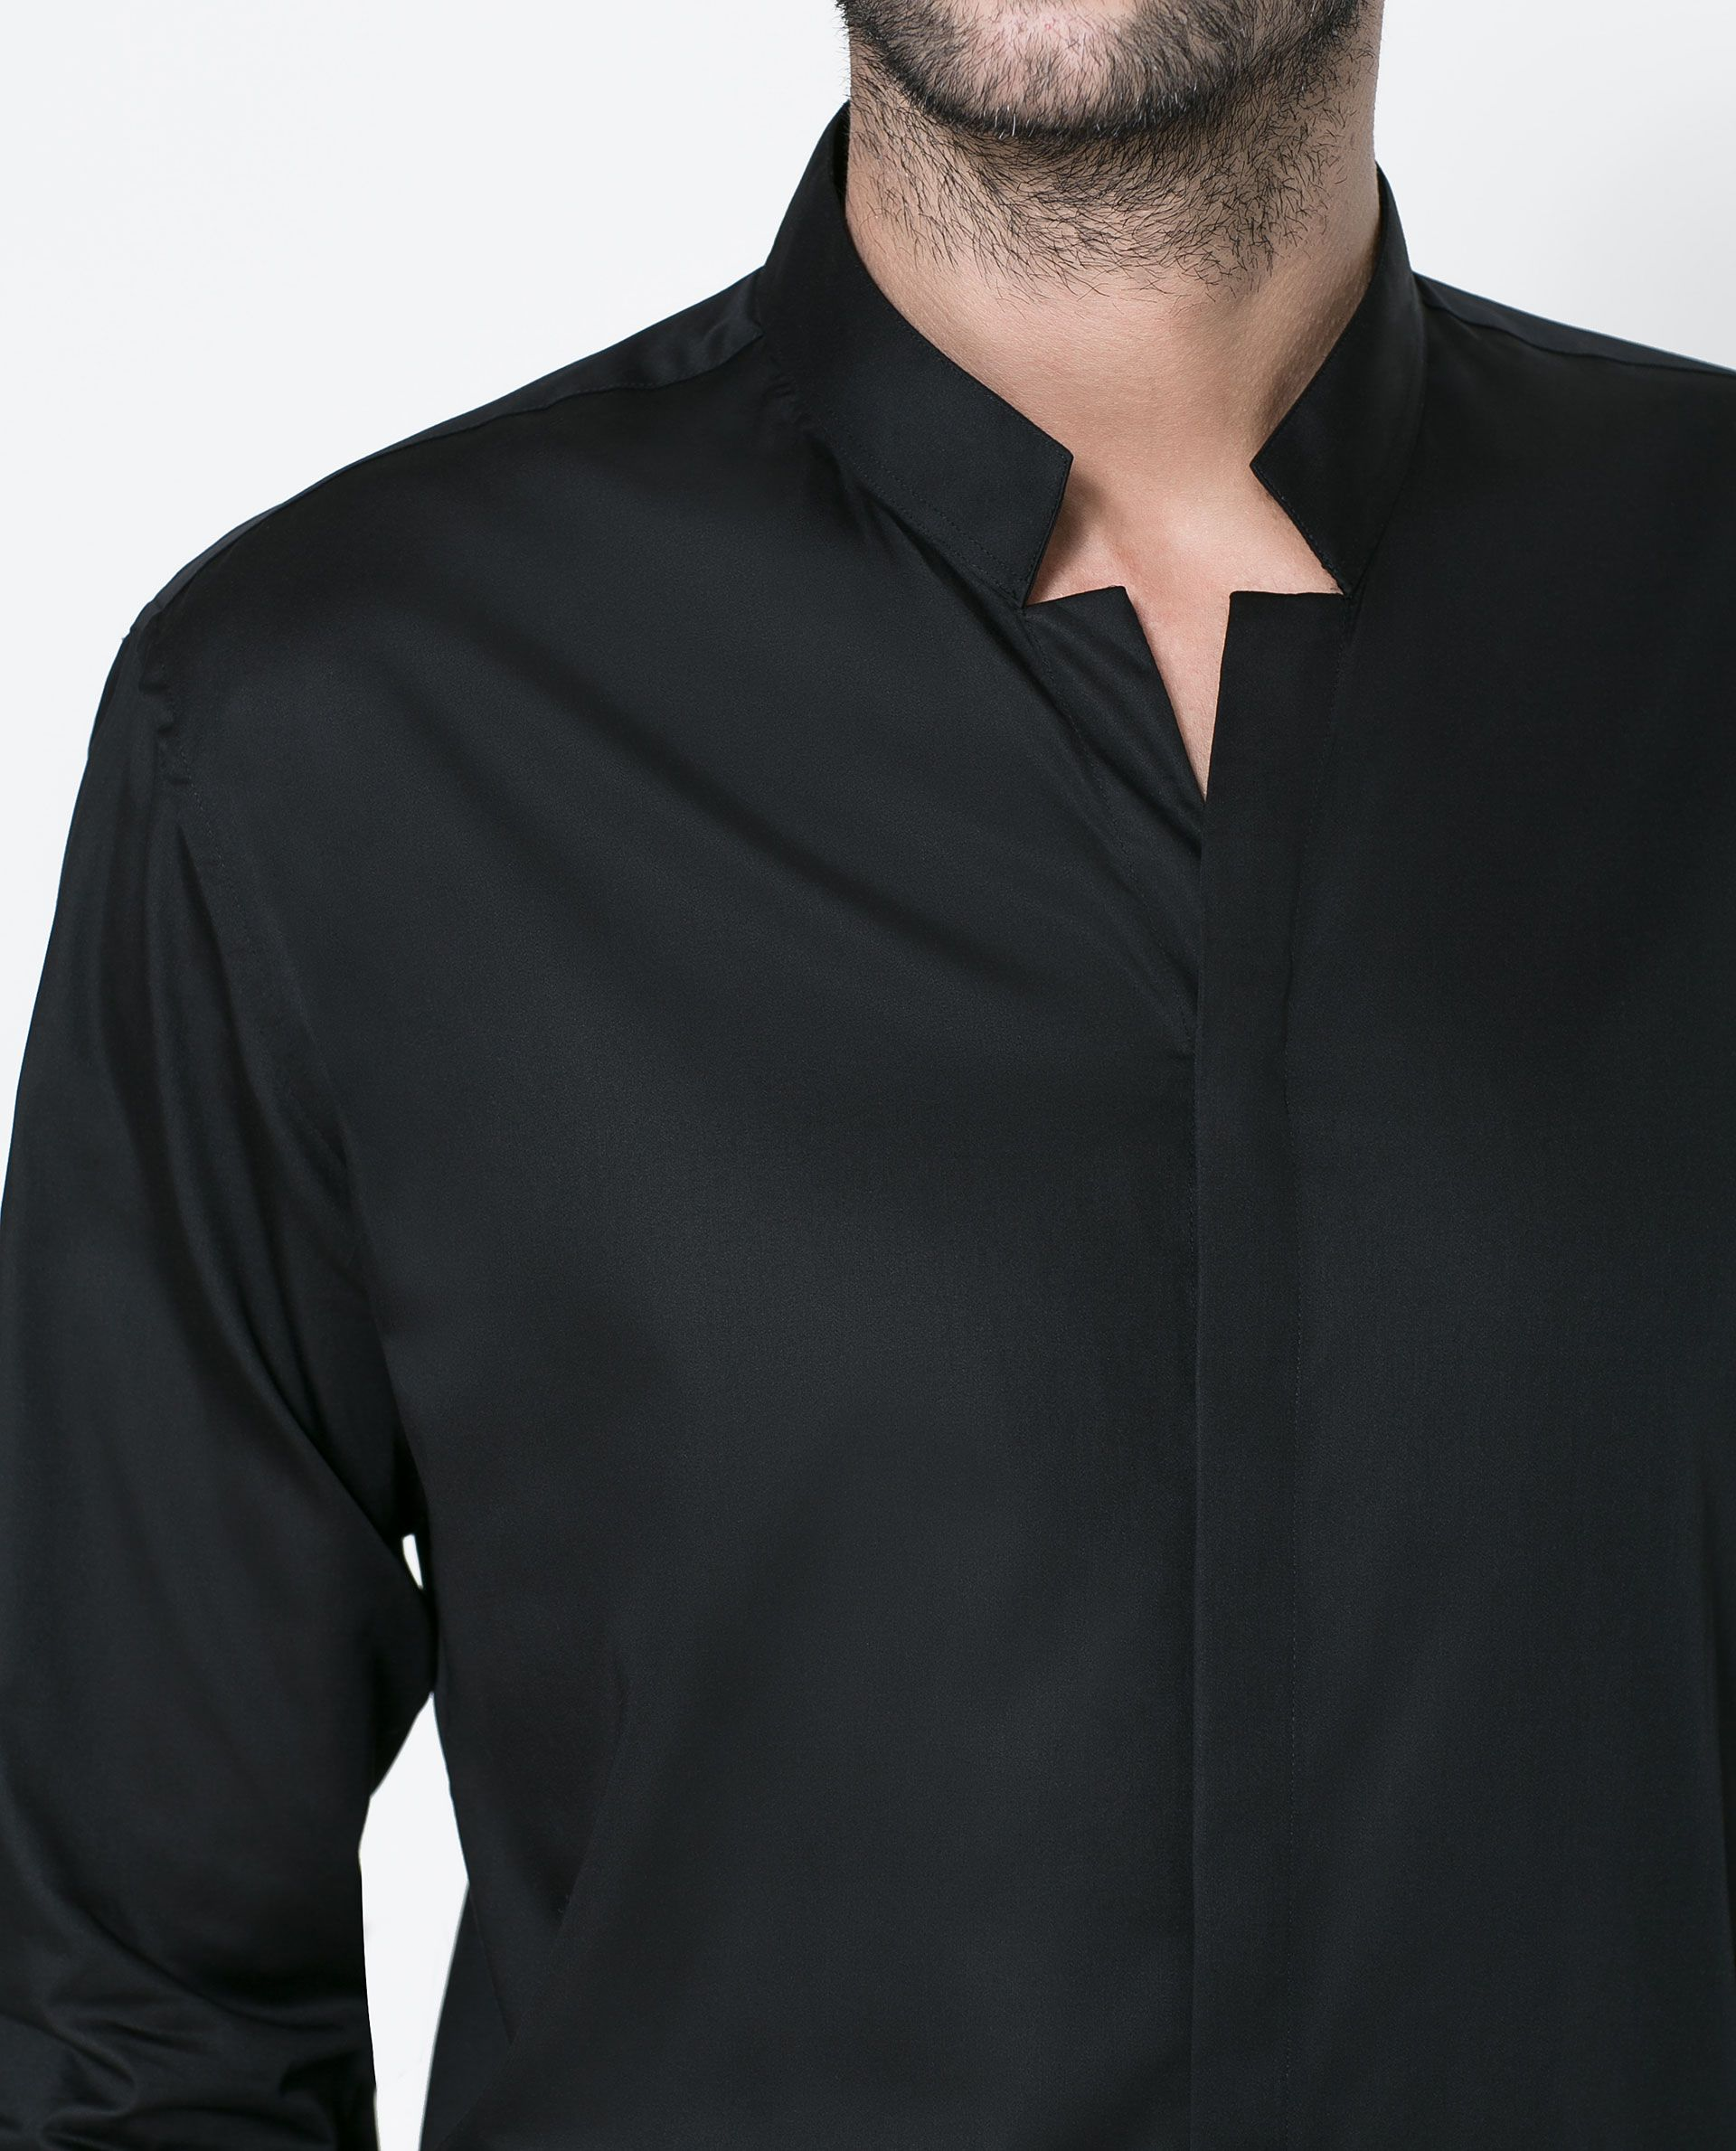 Mens fashion collared shirts 61